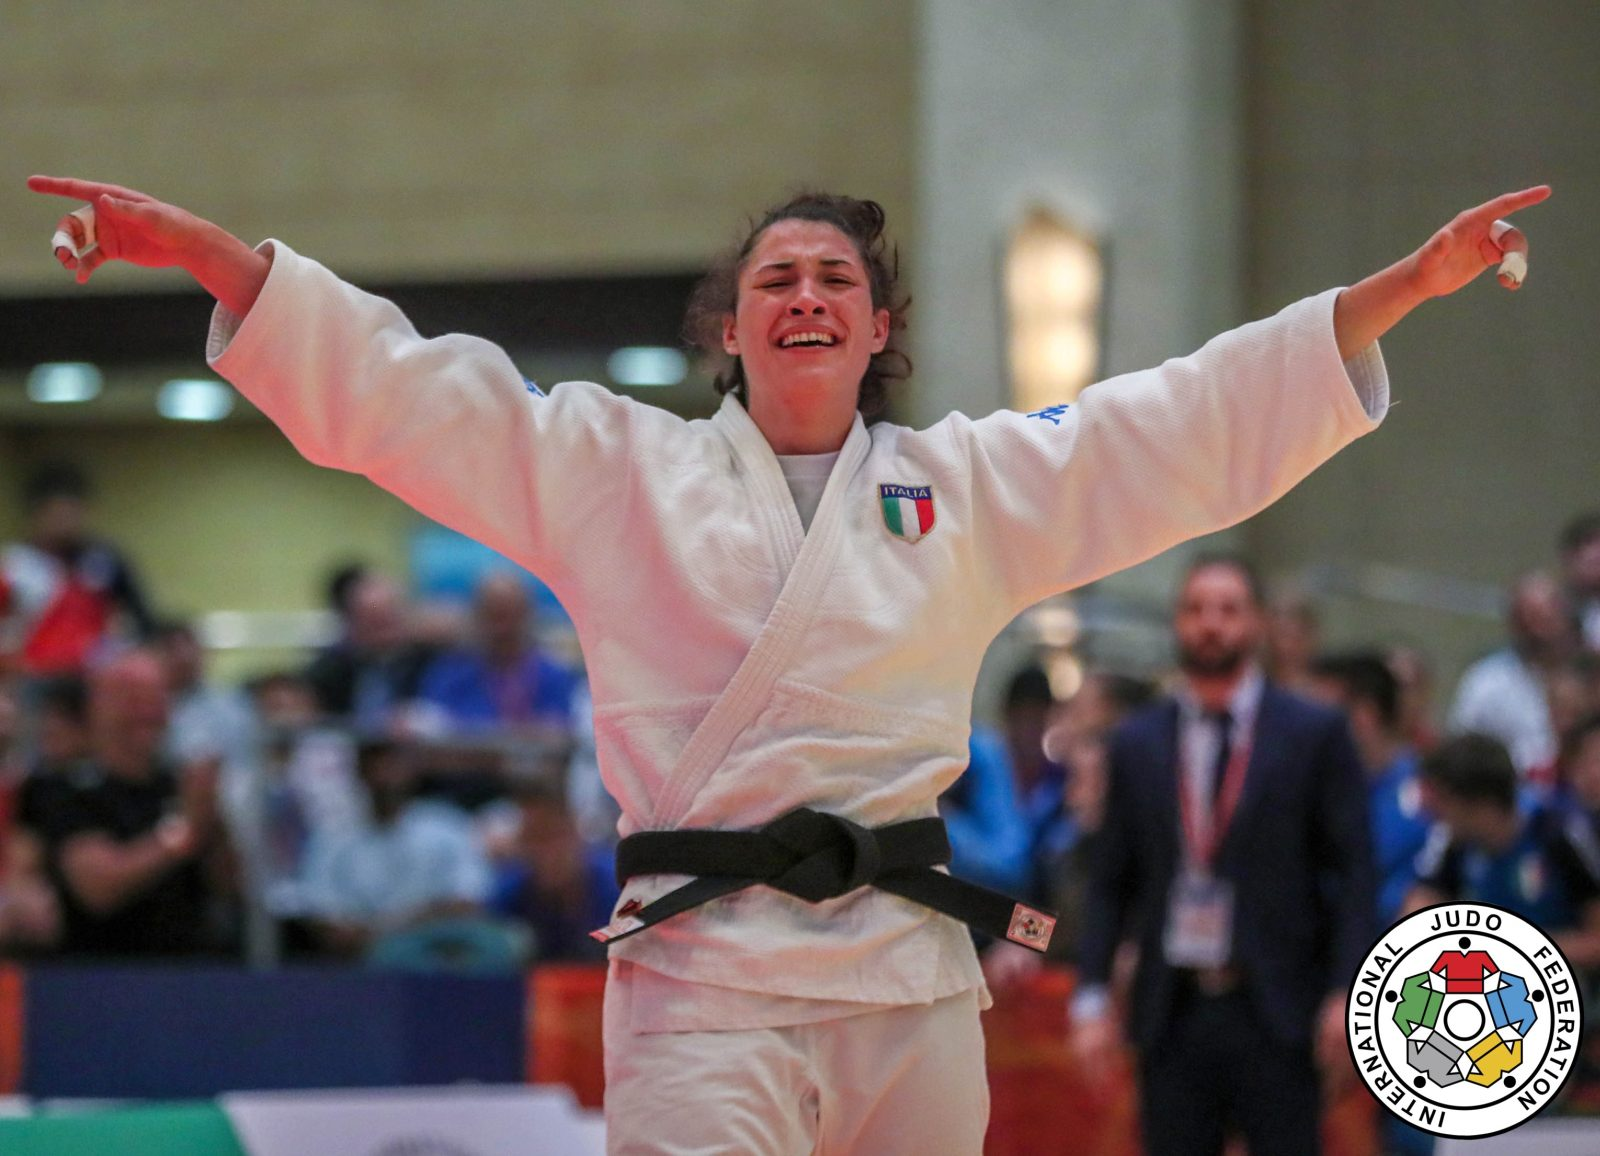 20181019_ijf_wcj_nassau_70_alice_bellandi_won